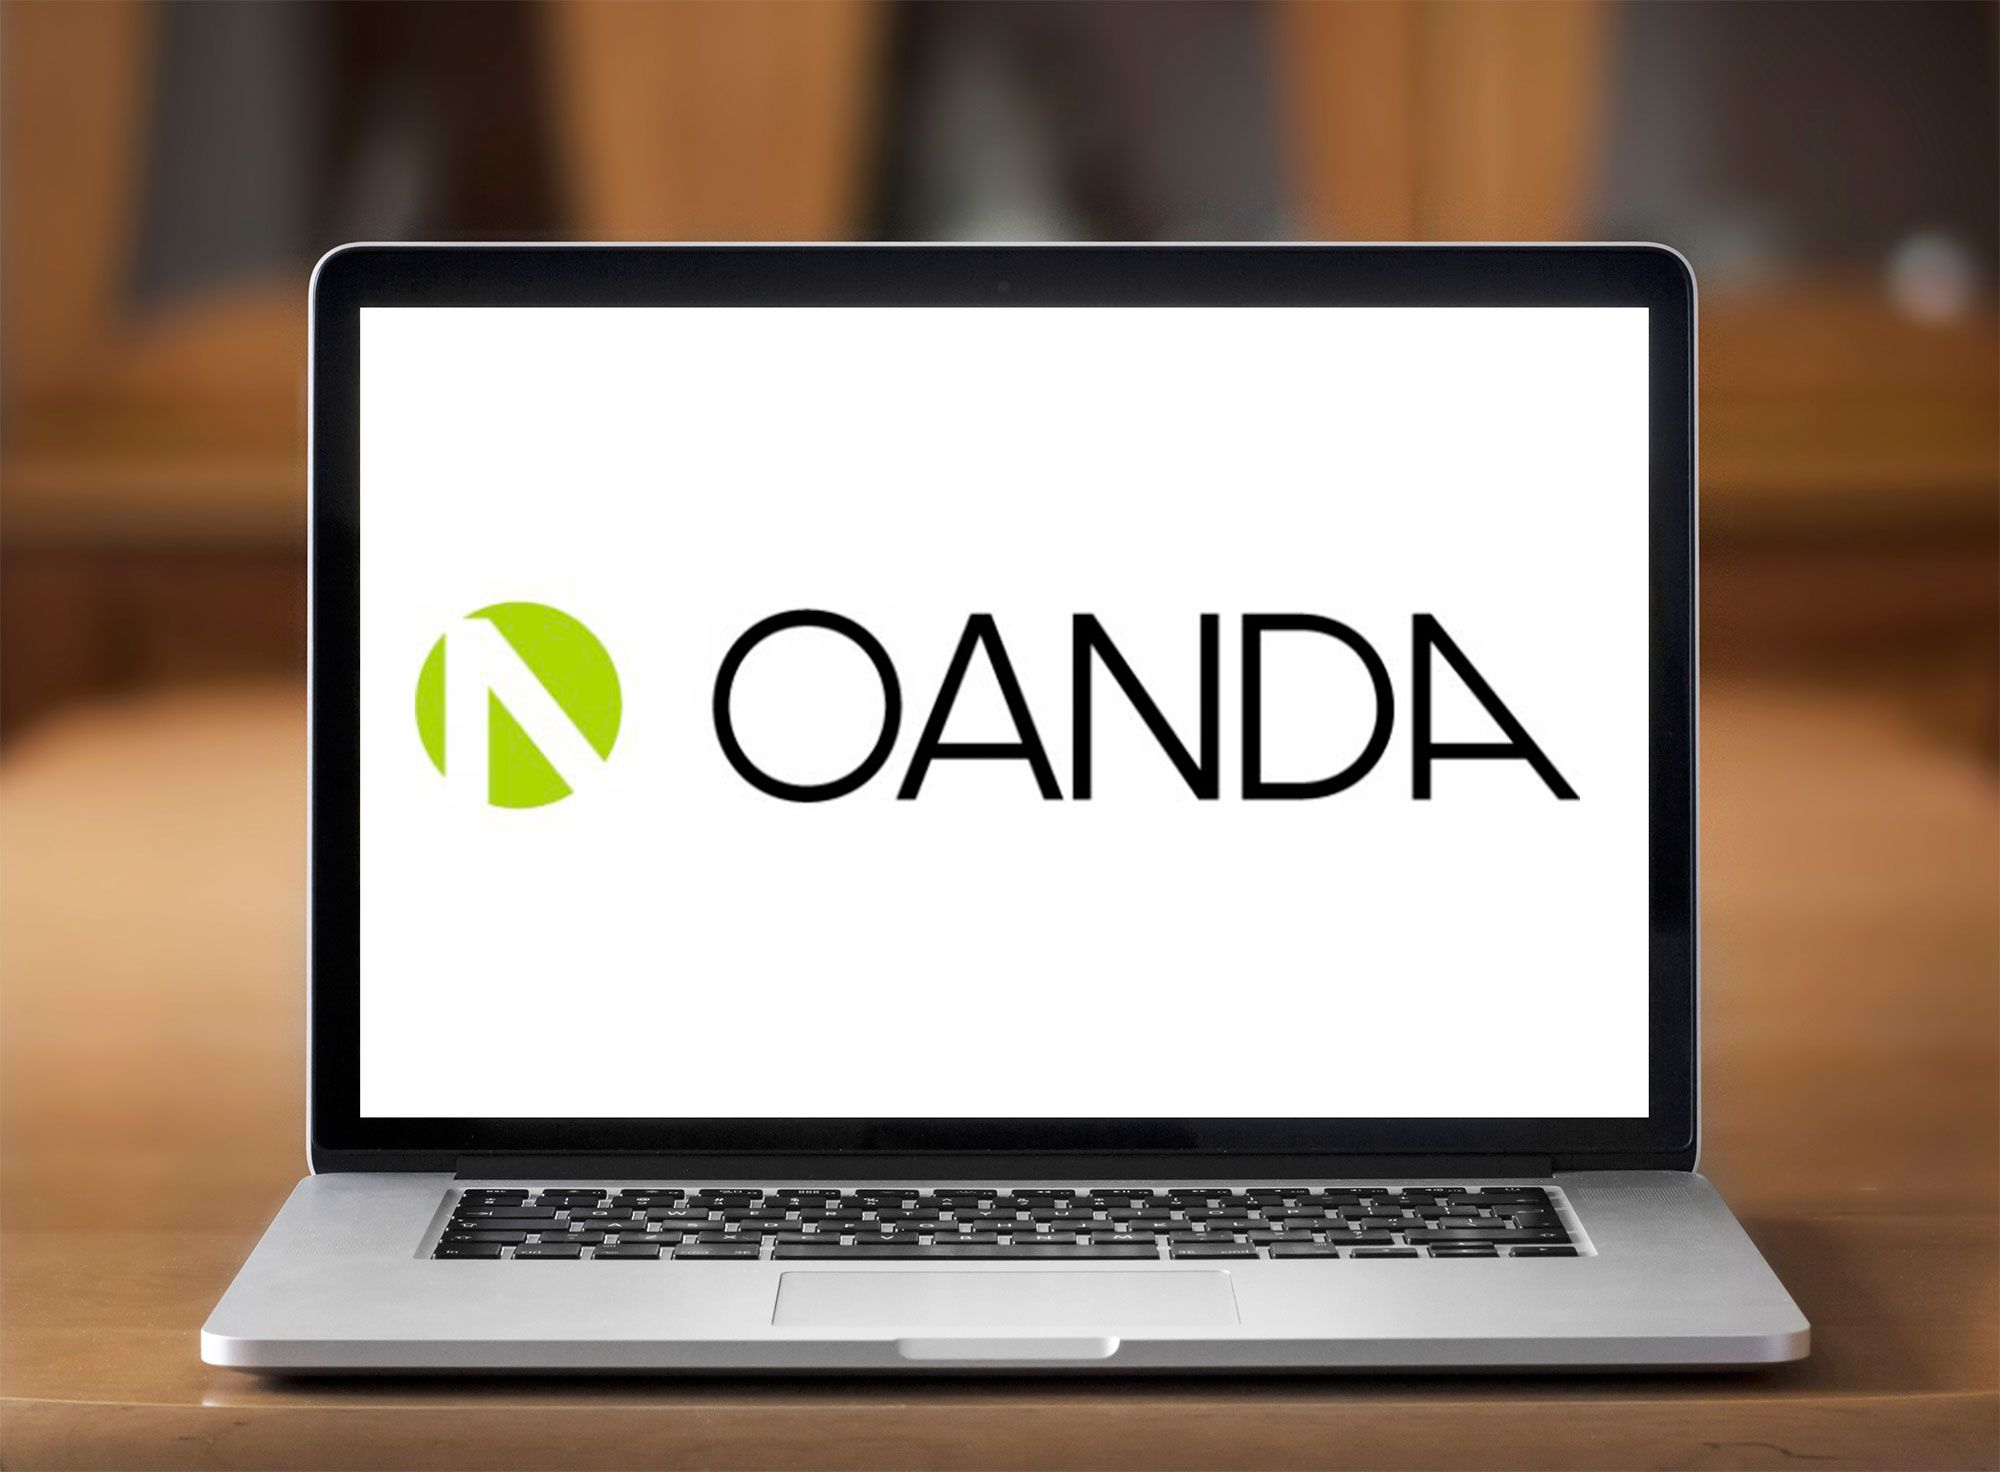 Review of oanda forex broker